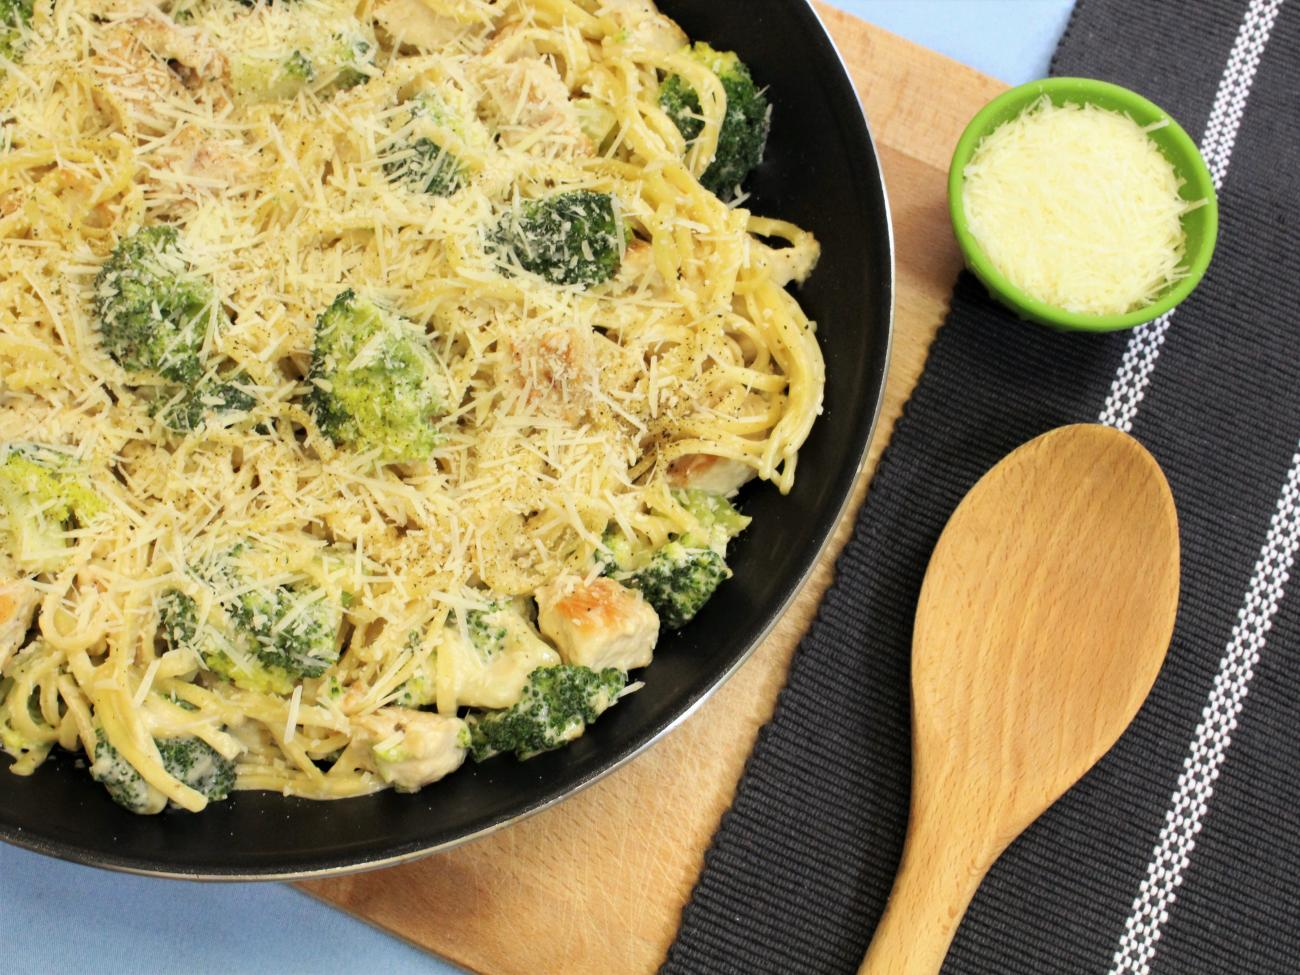 Recipe for Chicken and Broccoli Alfredo